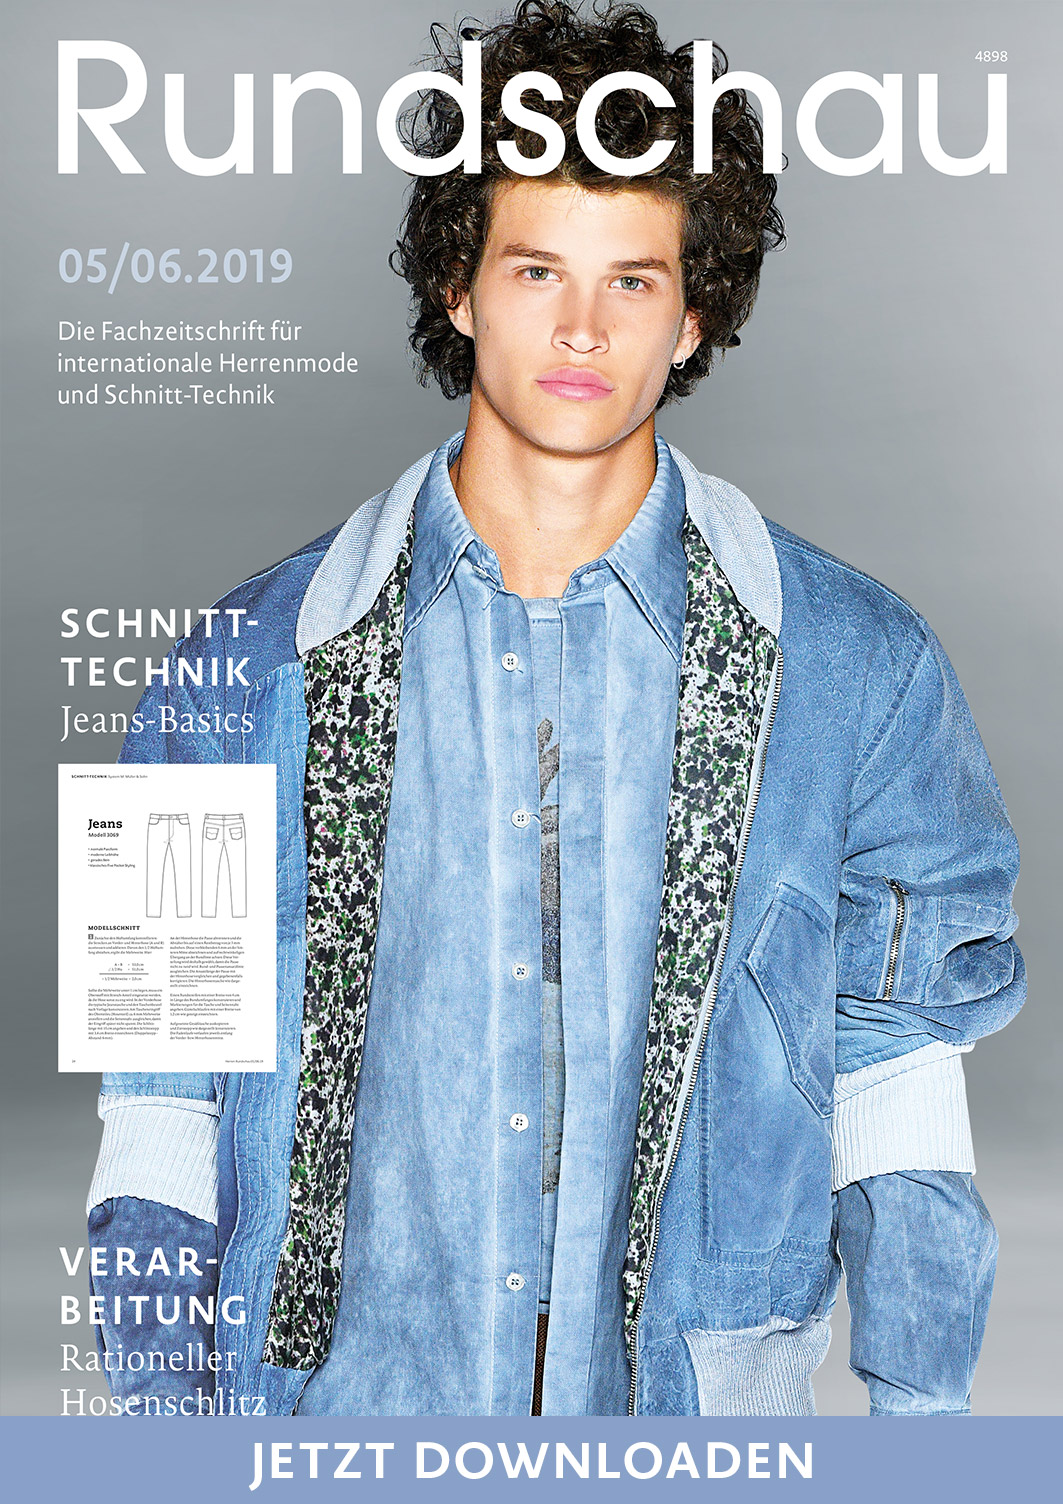 Rundschau für Internationale Herrenmode 5/6.2019